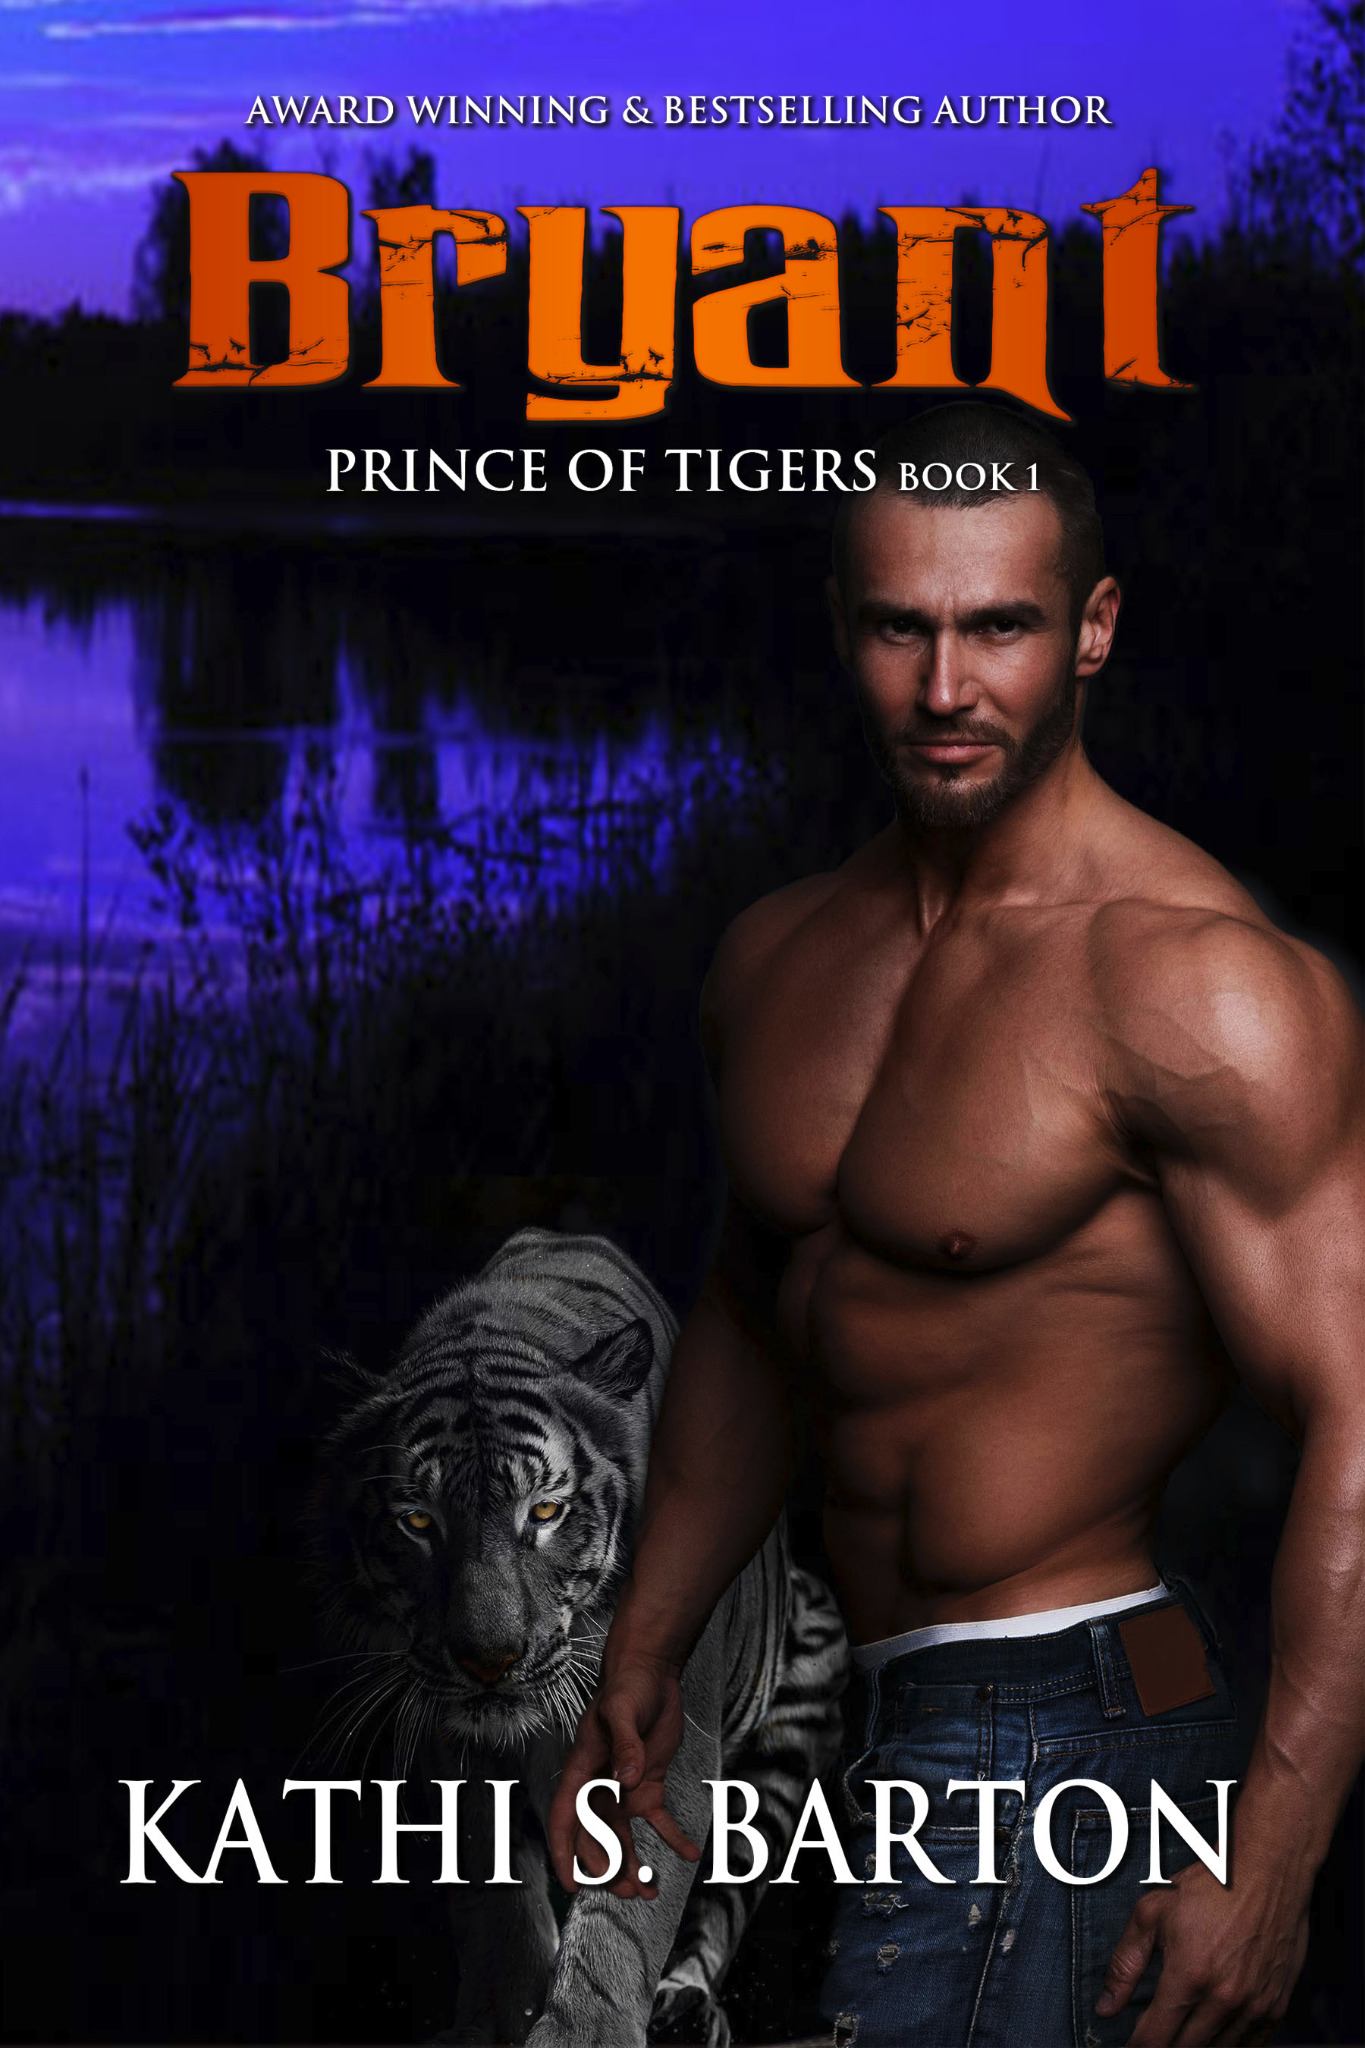 Bryant - Prince of Tigers Book 1